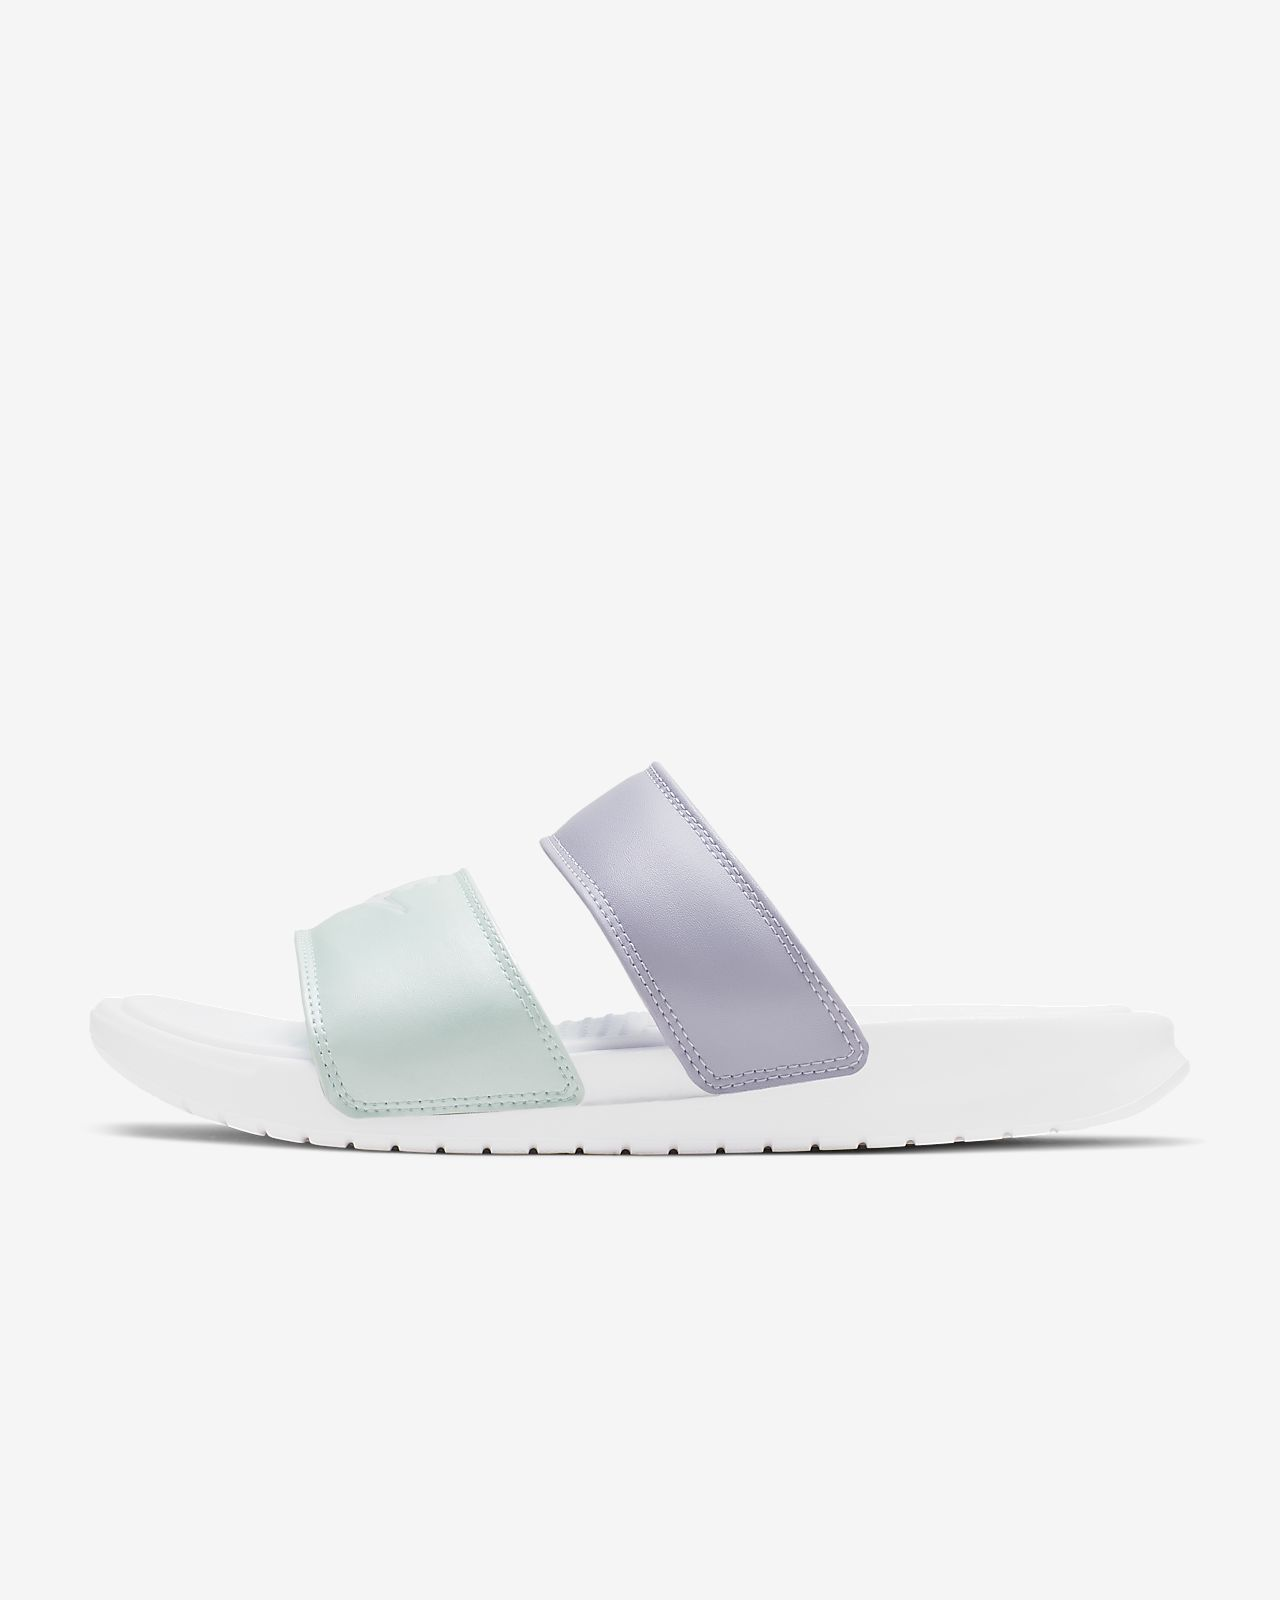 check out 6e4ae 29abf ... Nike Benassi Duo Ultra Women s Slide